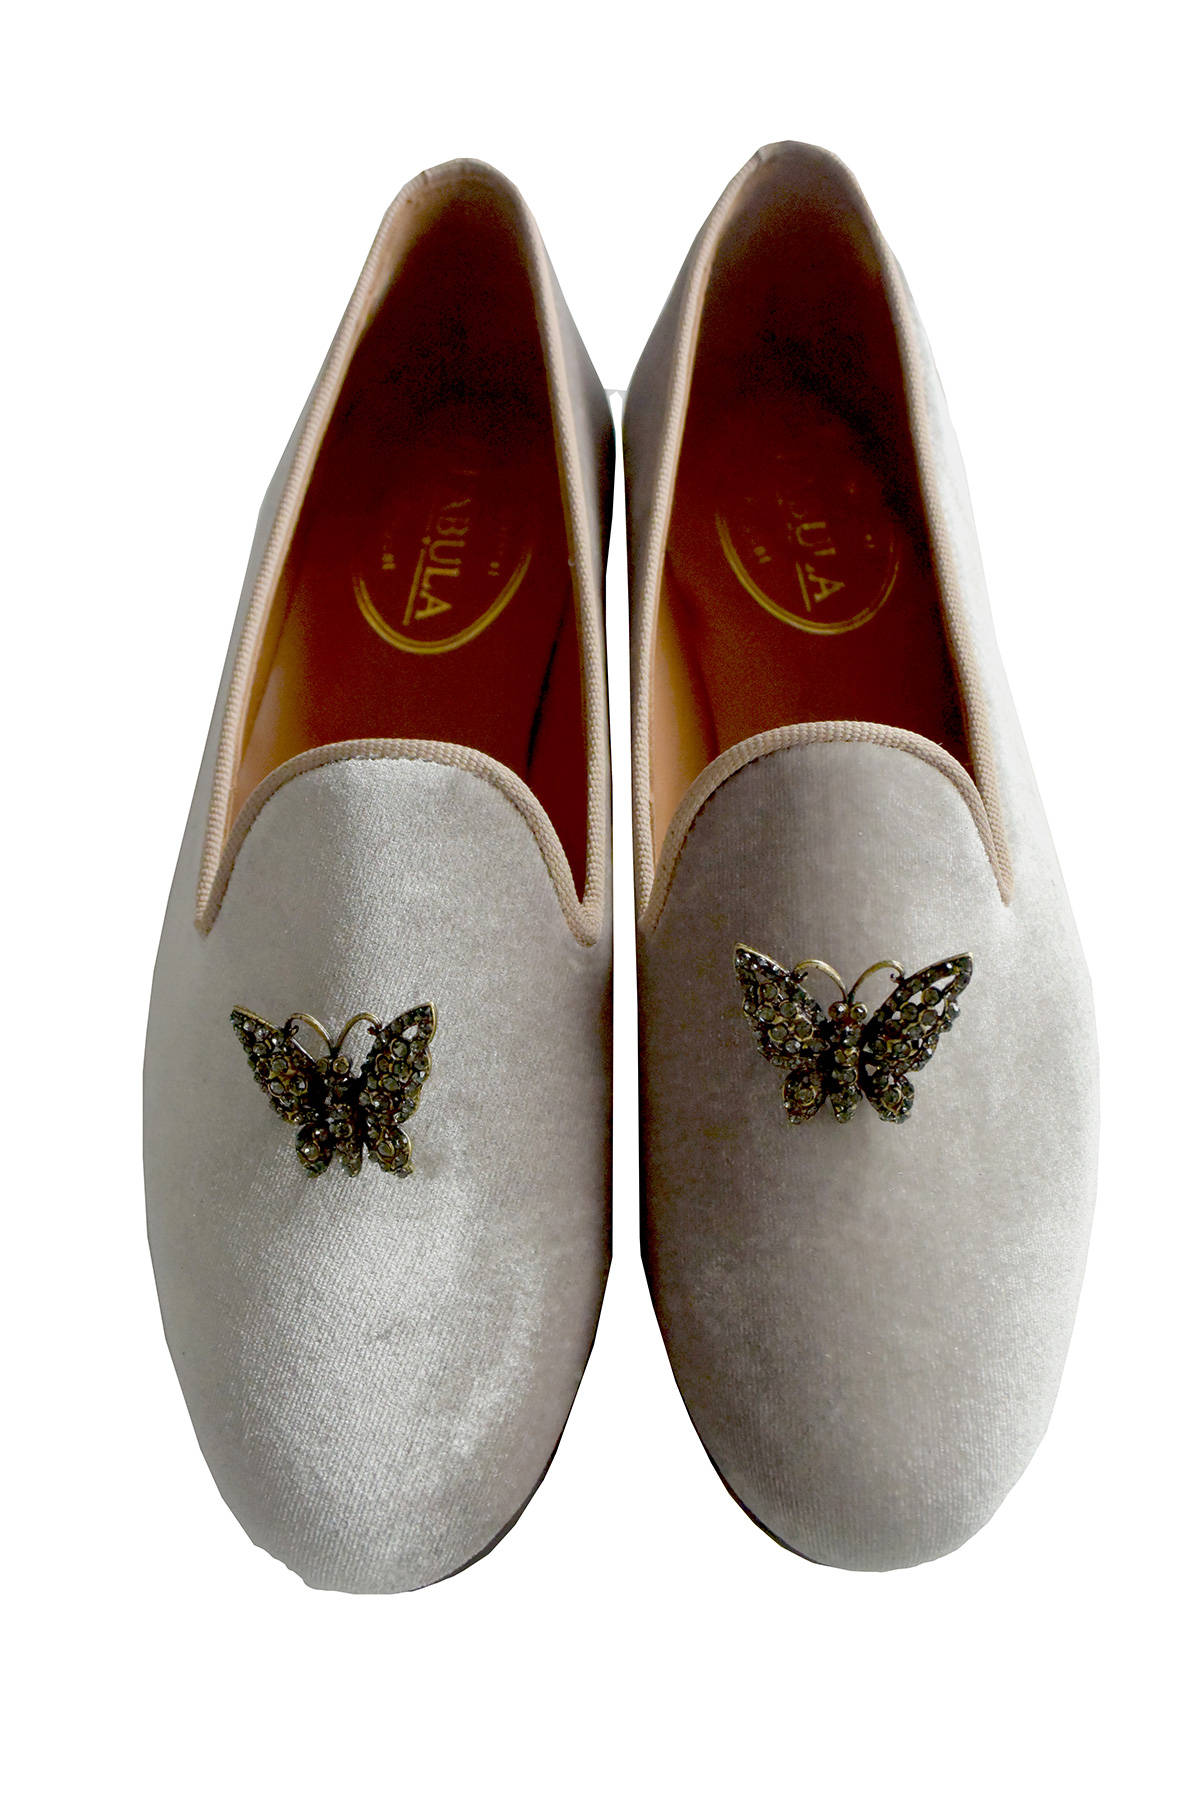 gray bespoke velvet slippers with butterfly brooches